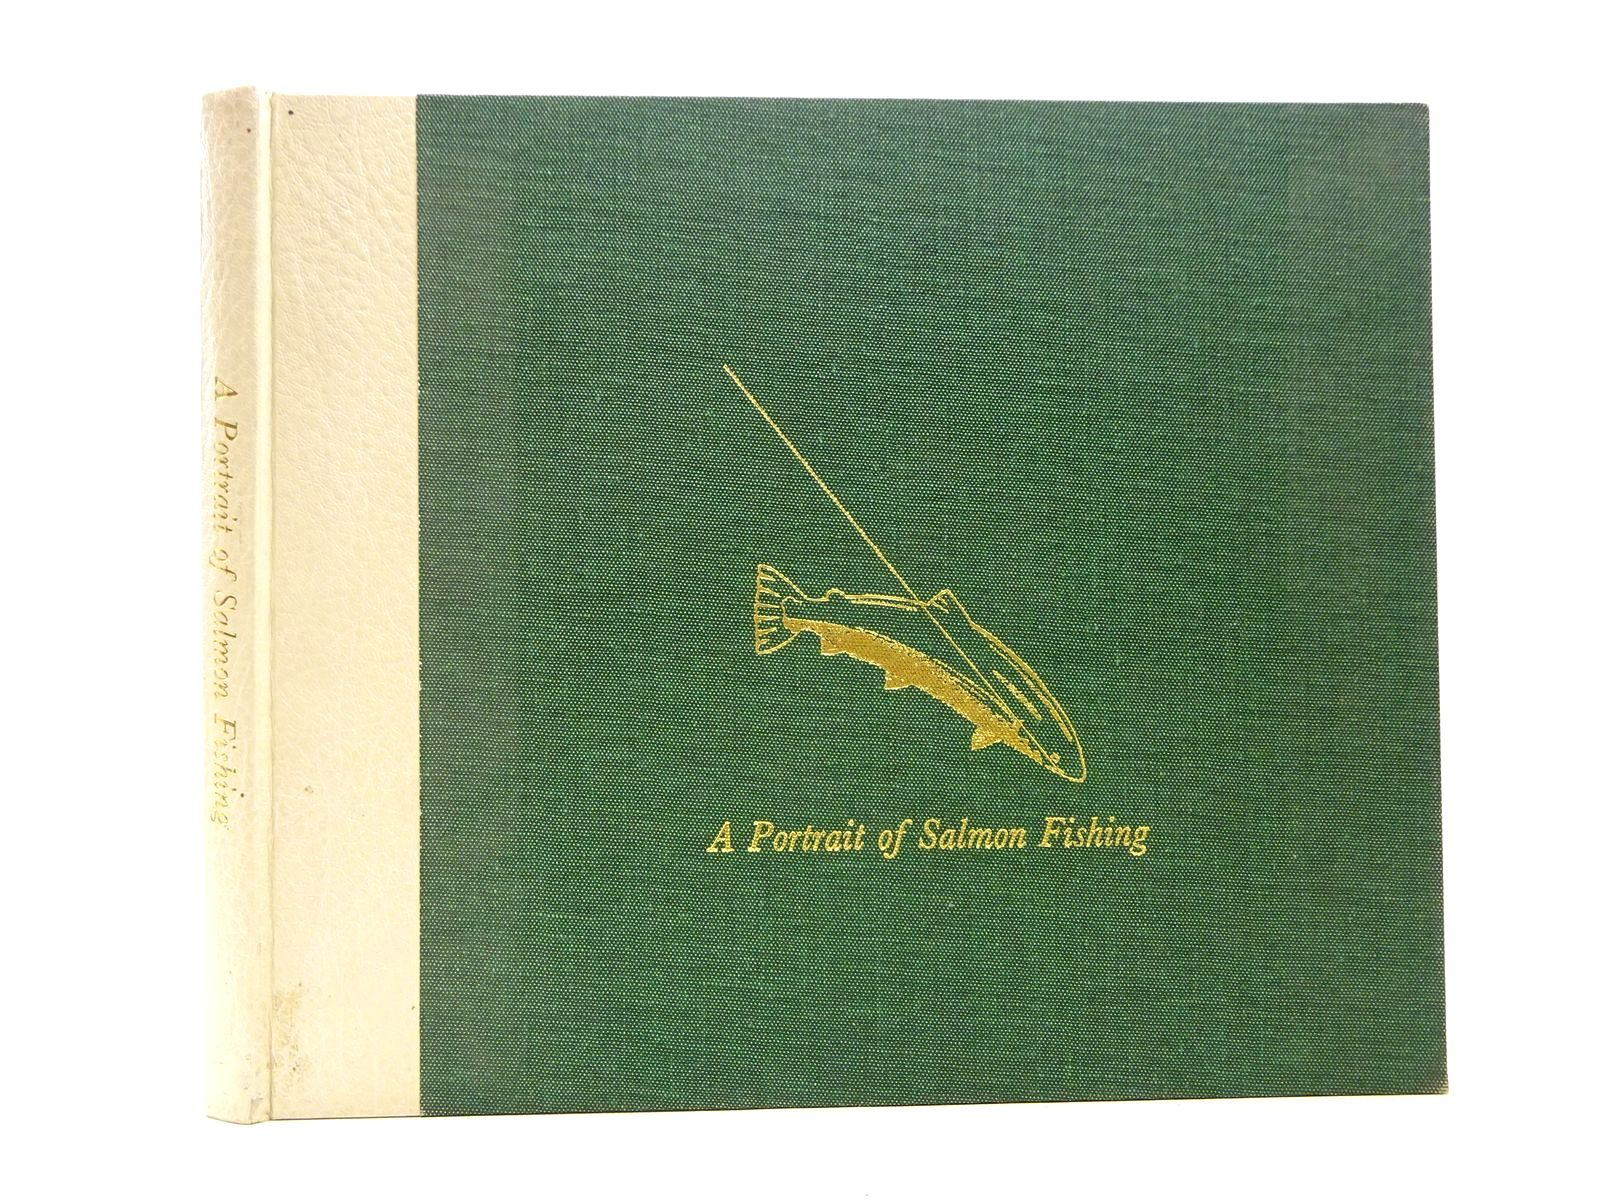 Photo of A PORTRAIT OF SALMON FISHING written by Nickson, Geoffrey illustrated by Havers, Tim published by Antony Atha (STOCK CODE: 1815731)  for sale by Stella & Rose's Books